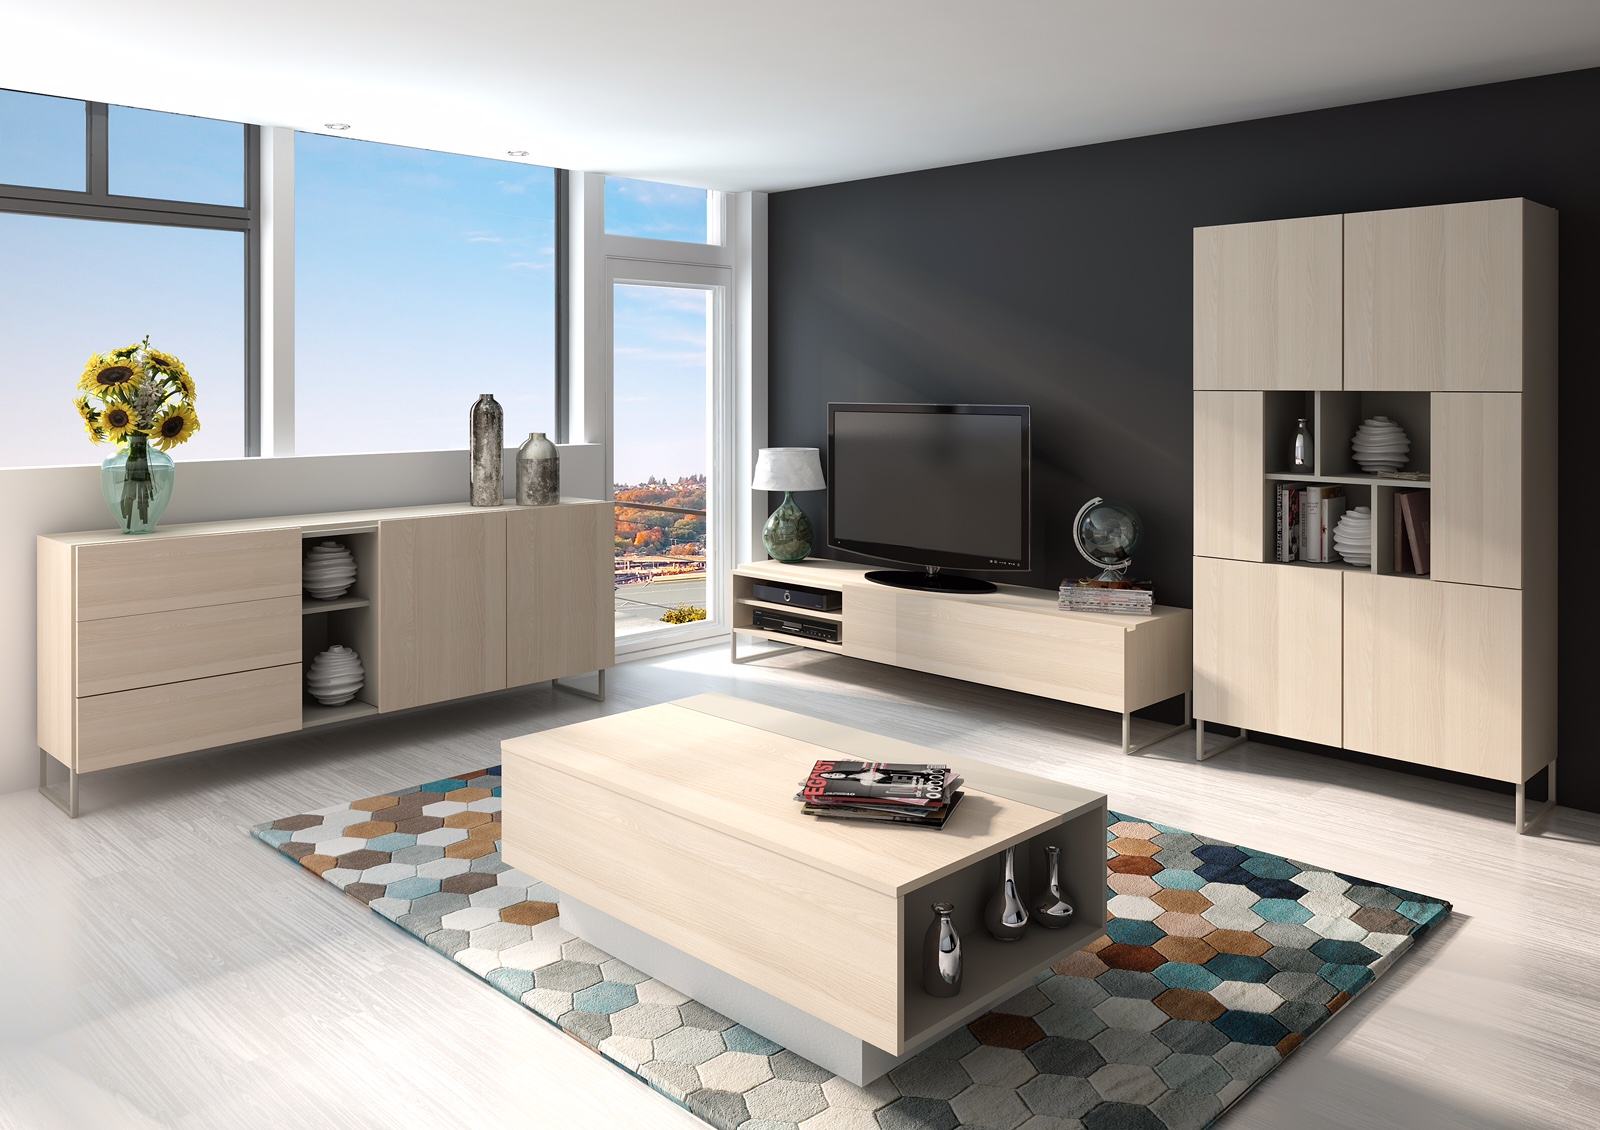 Modular living room Furniture from Spain